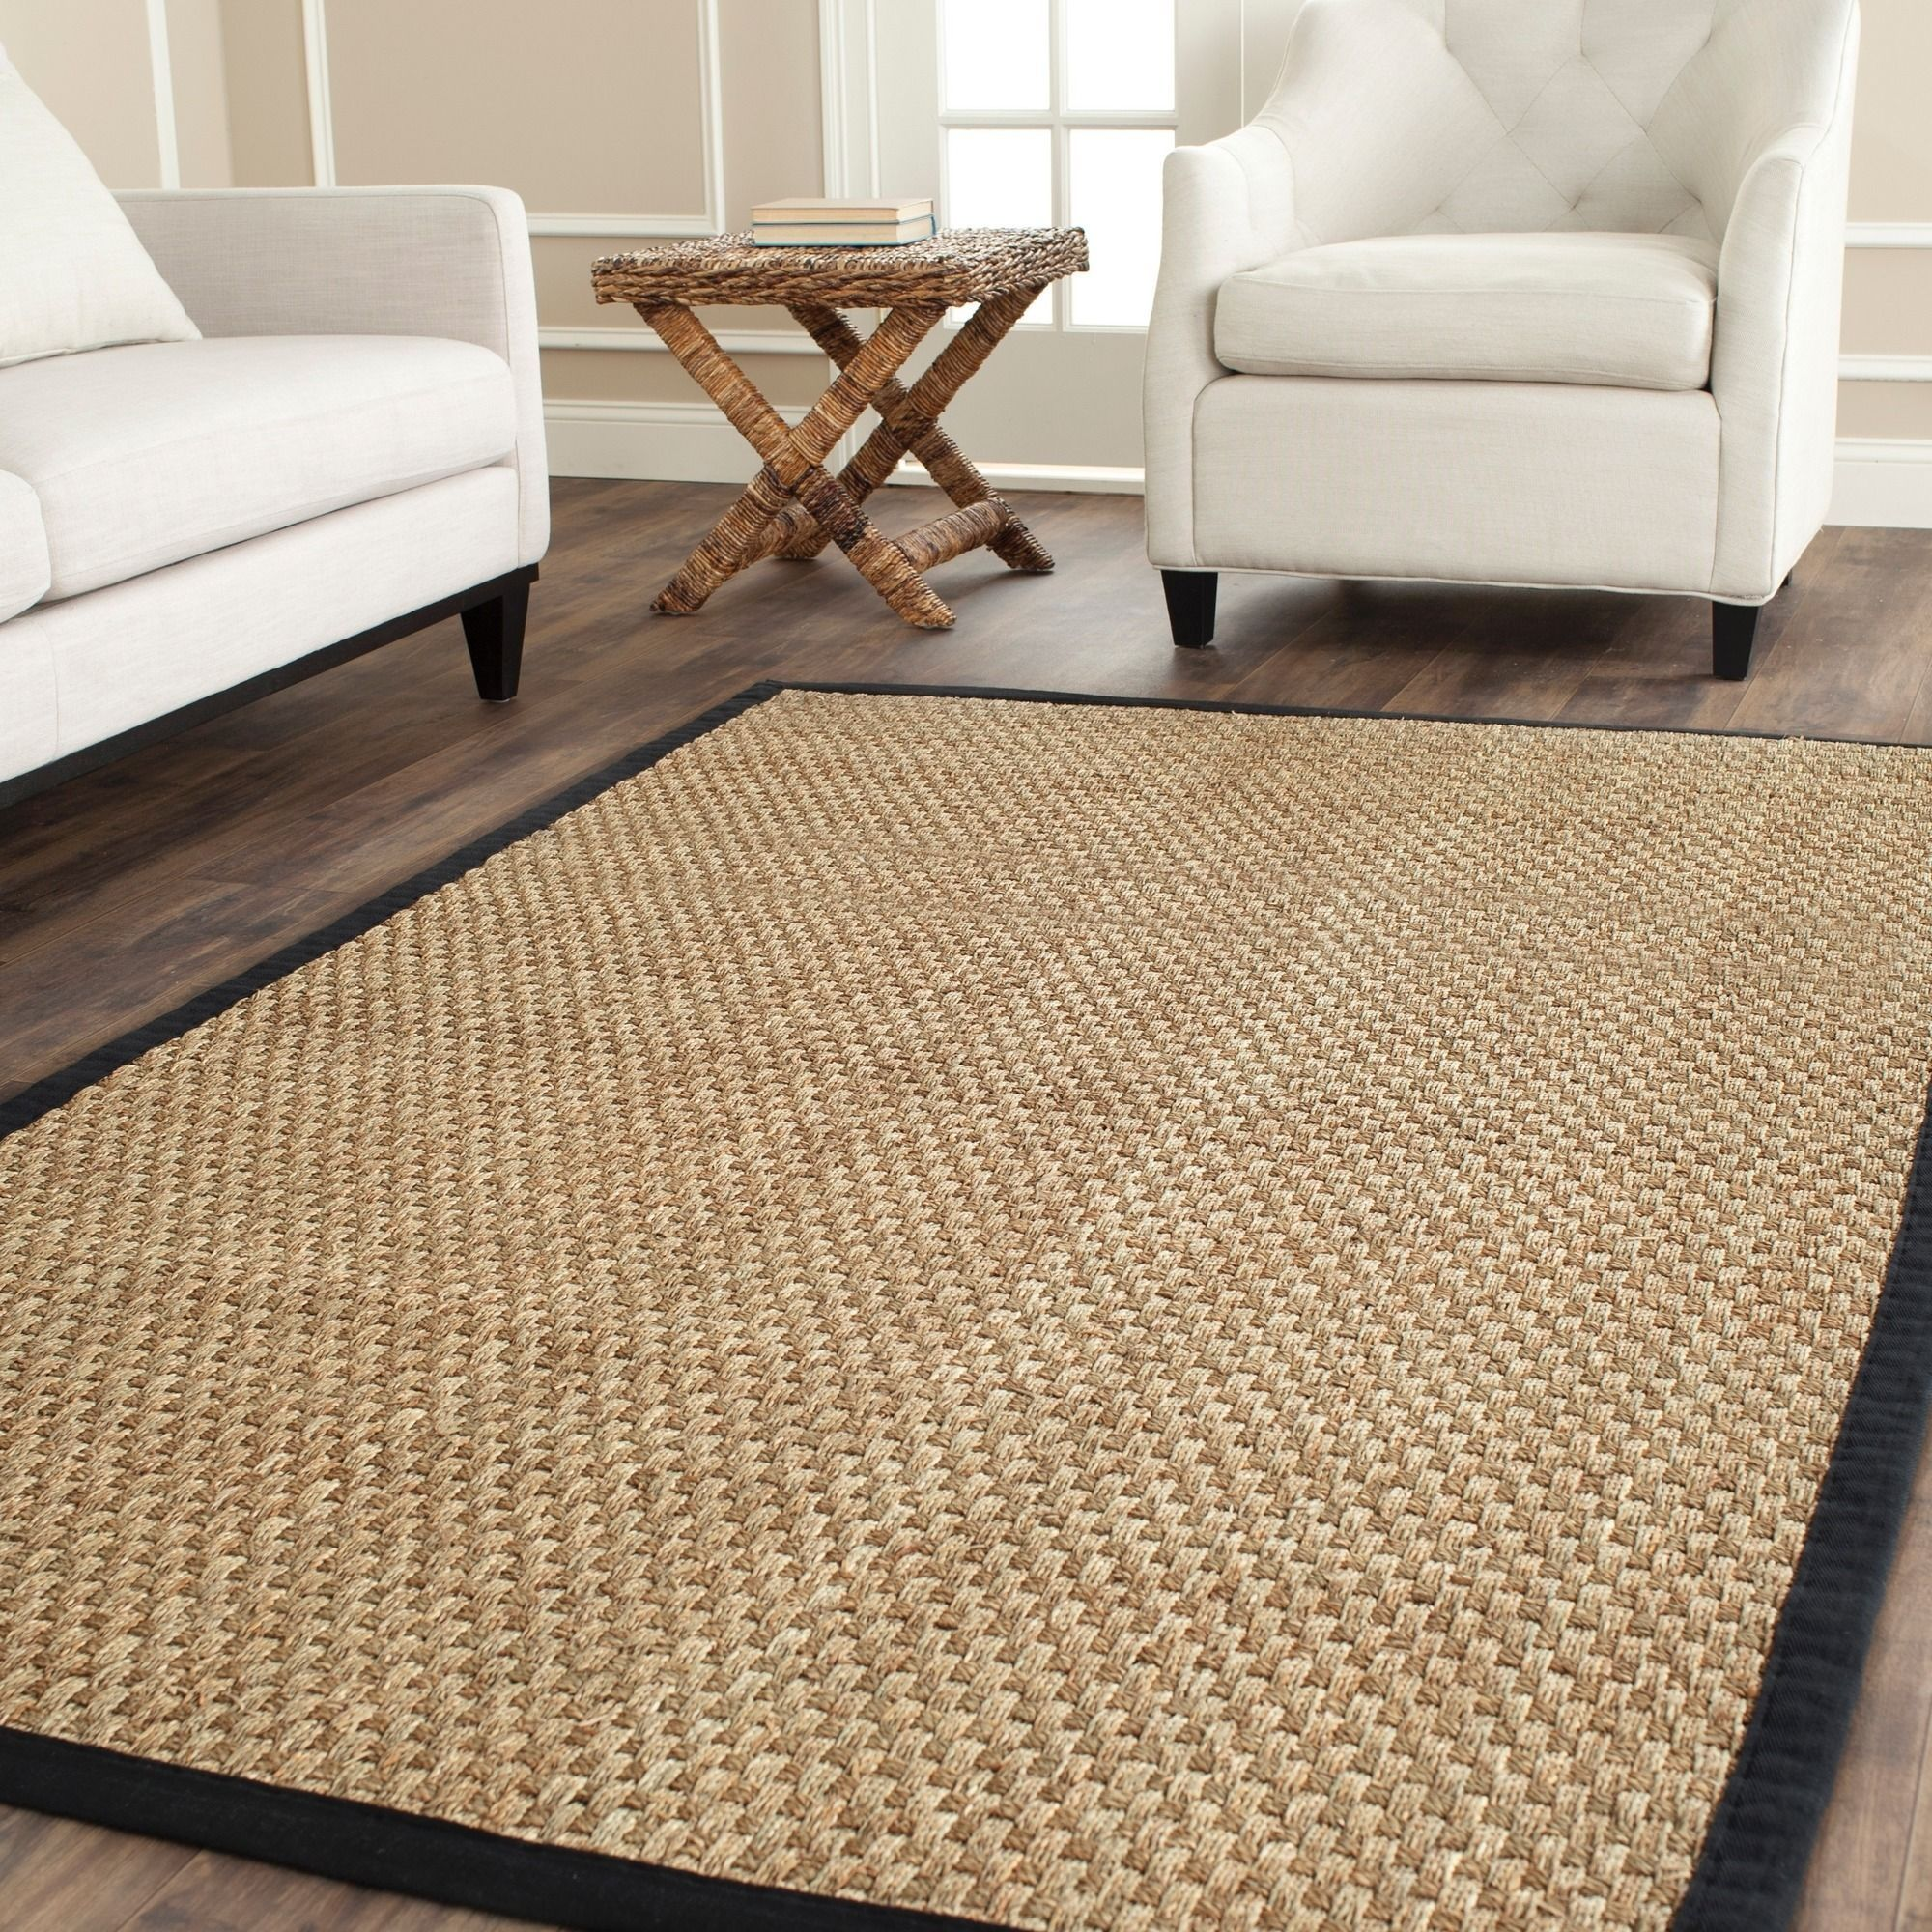 Dress Up Any Space With This Natural Hand Woven Rug Made